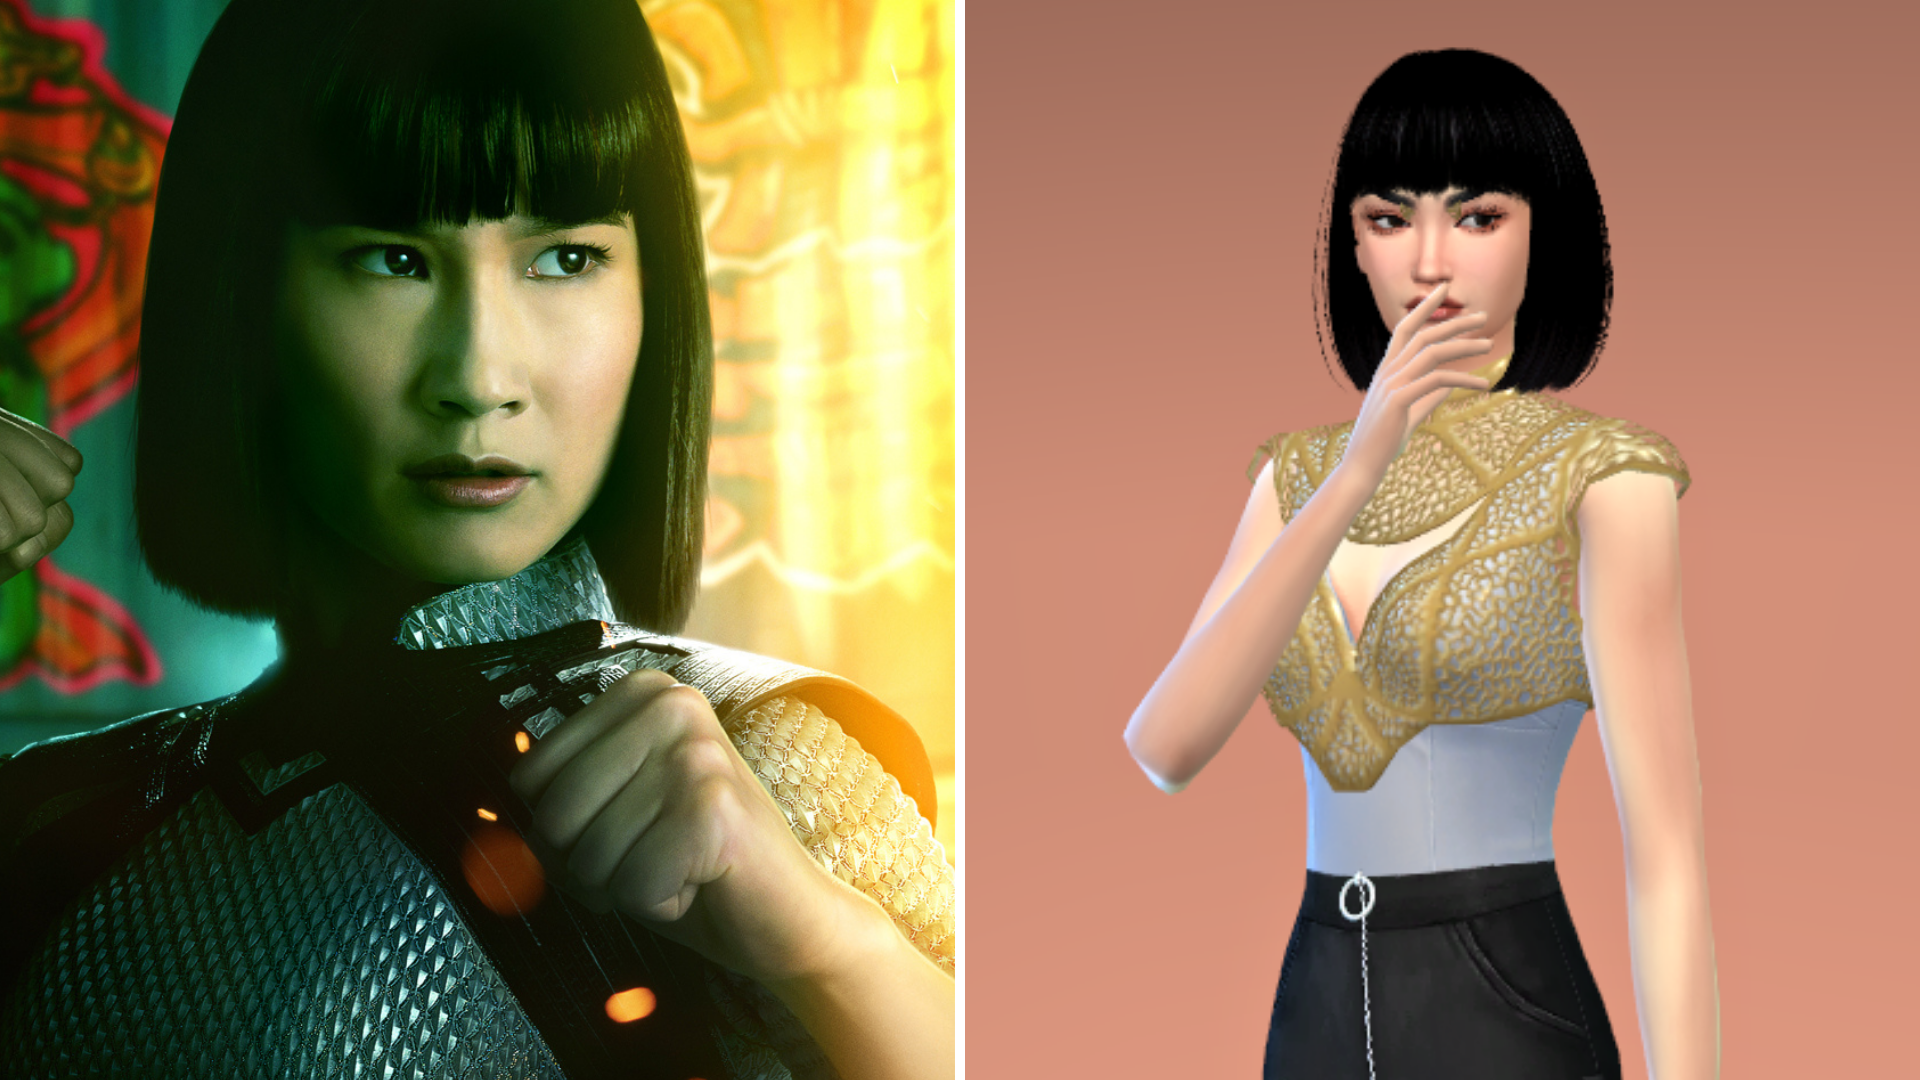 Shang-Chi's sister Xialing and her Sim